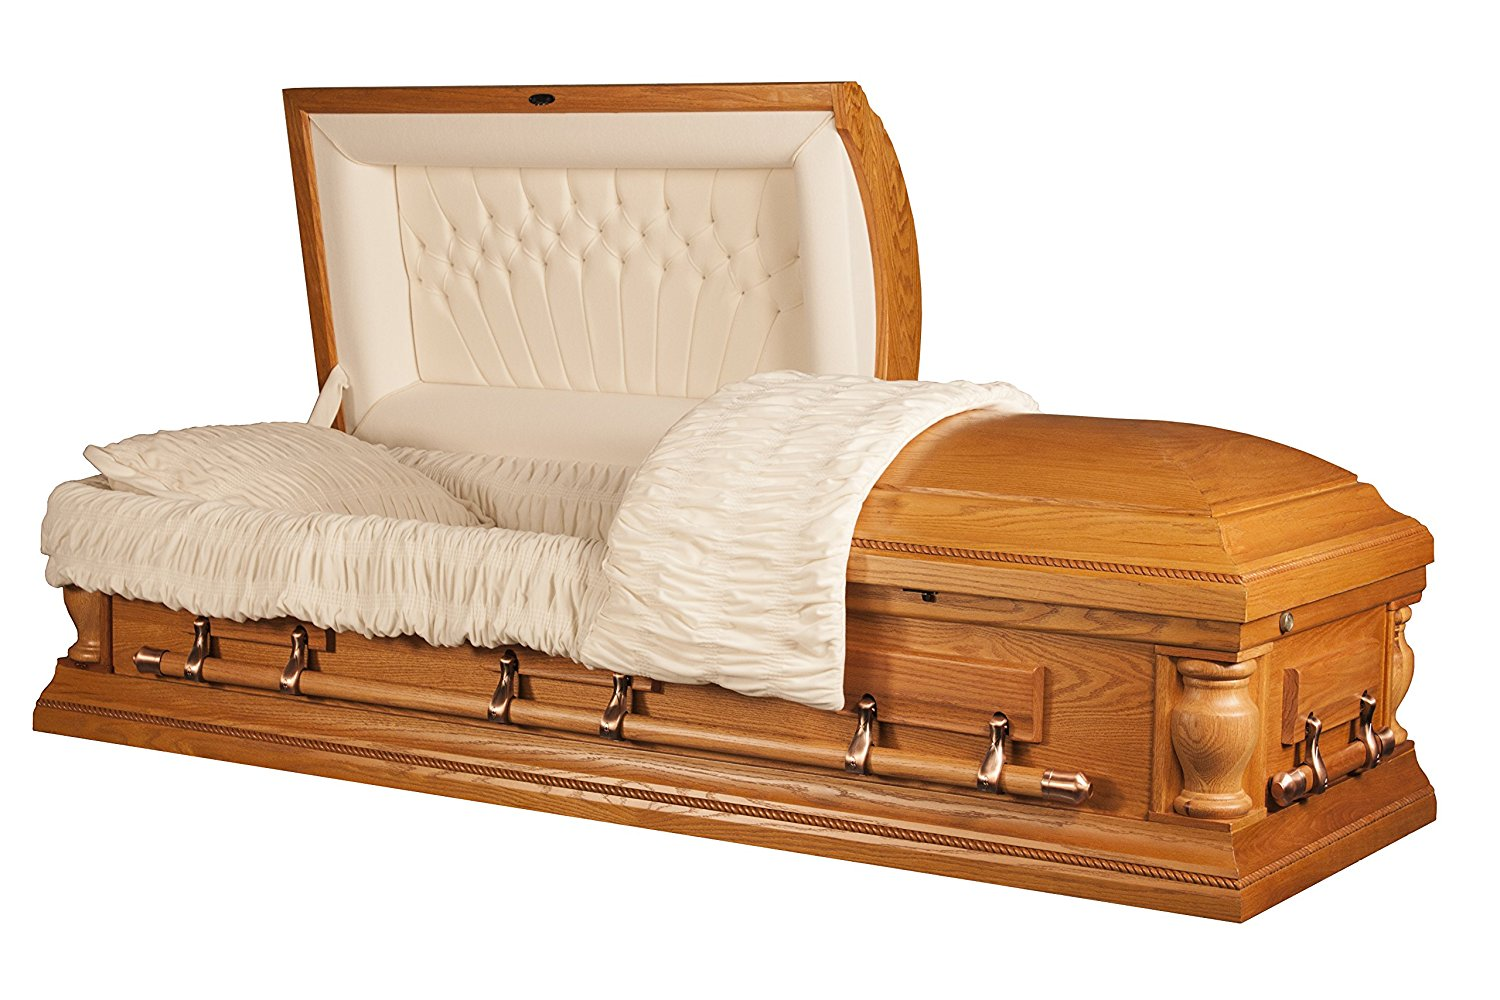 Affordable Oak Casket for Funeral